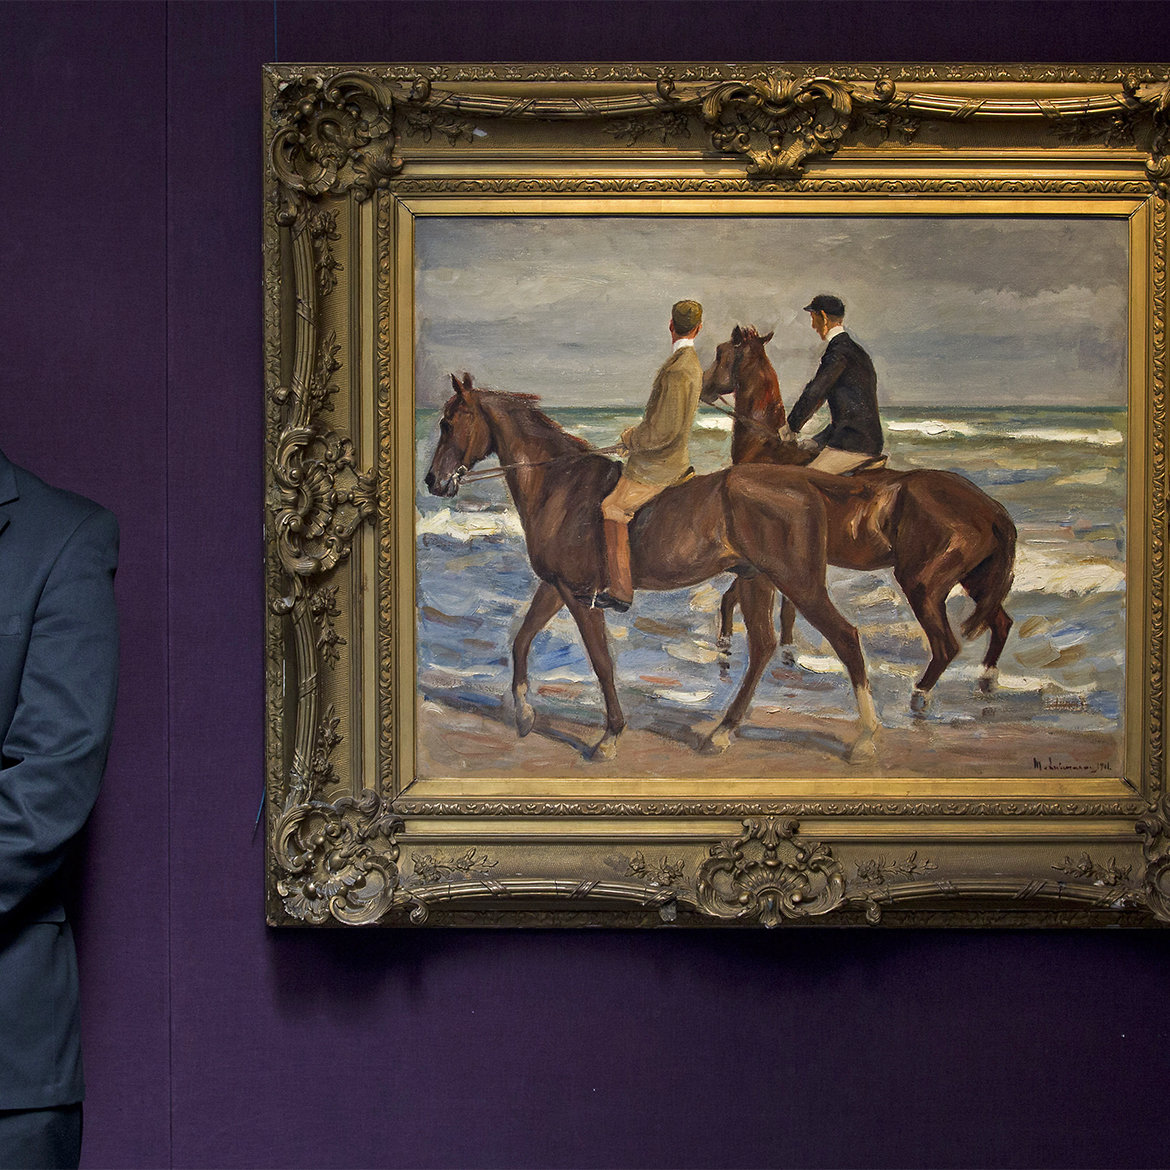 Nazi-Looted Painting on Display at Los Angeles County